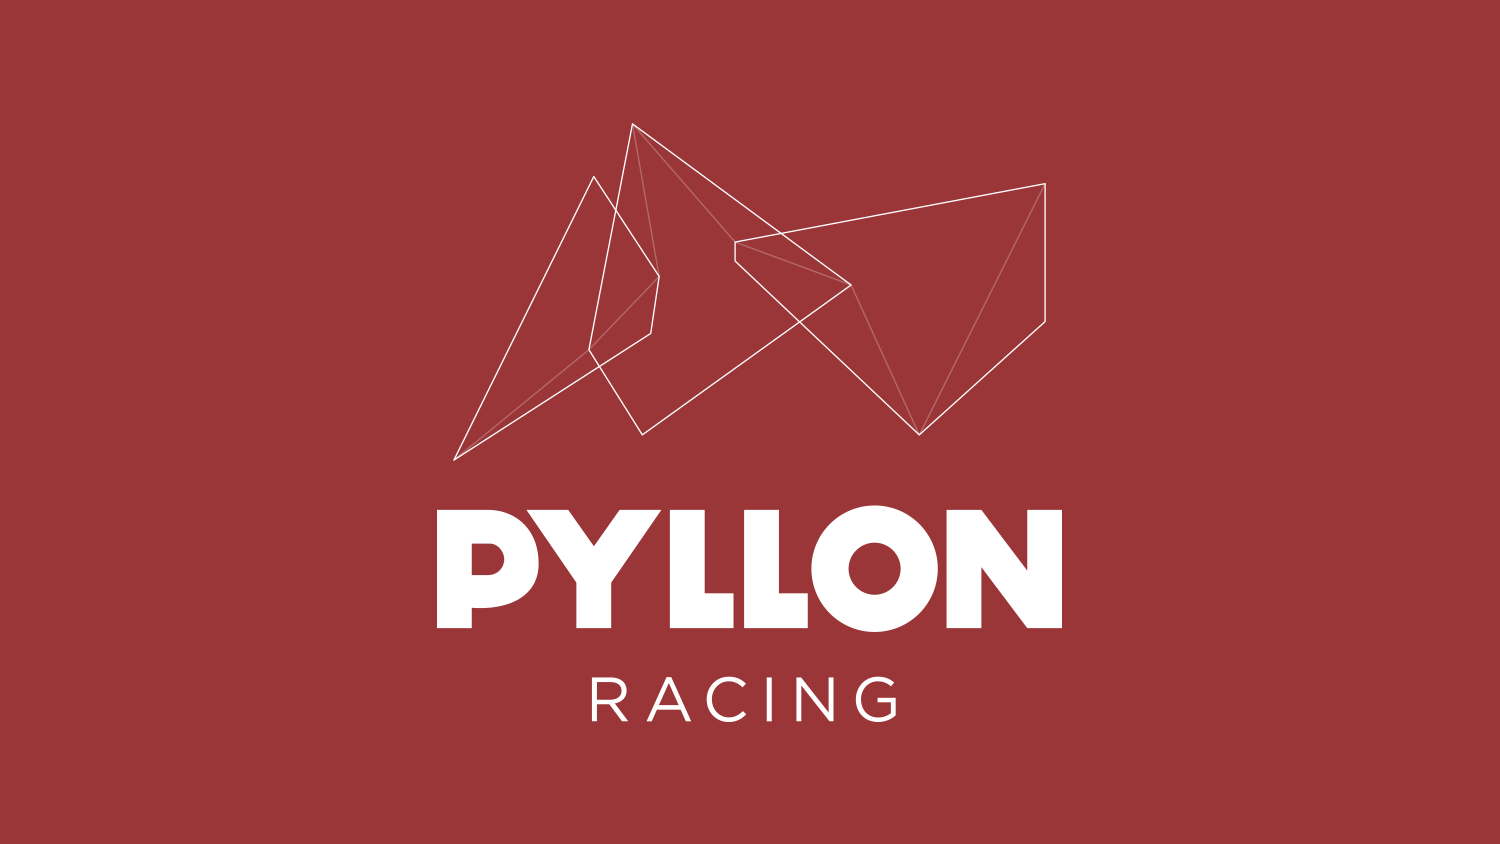 Pyllon_Racing.jpg